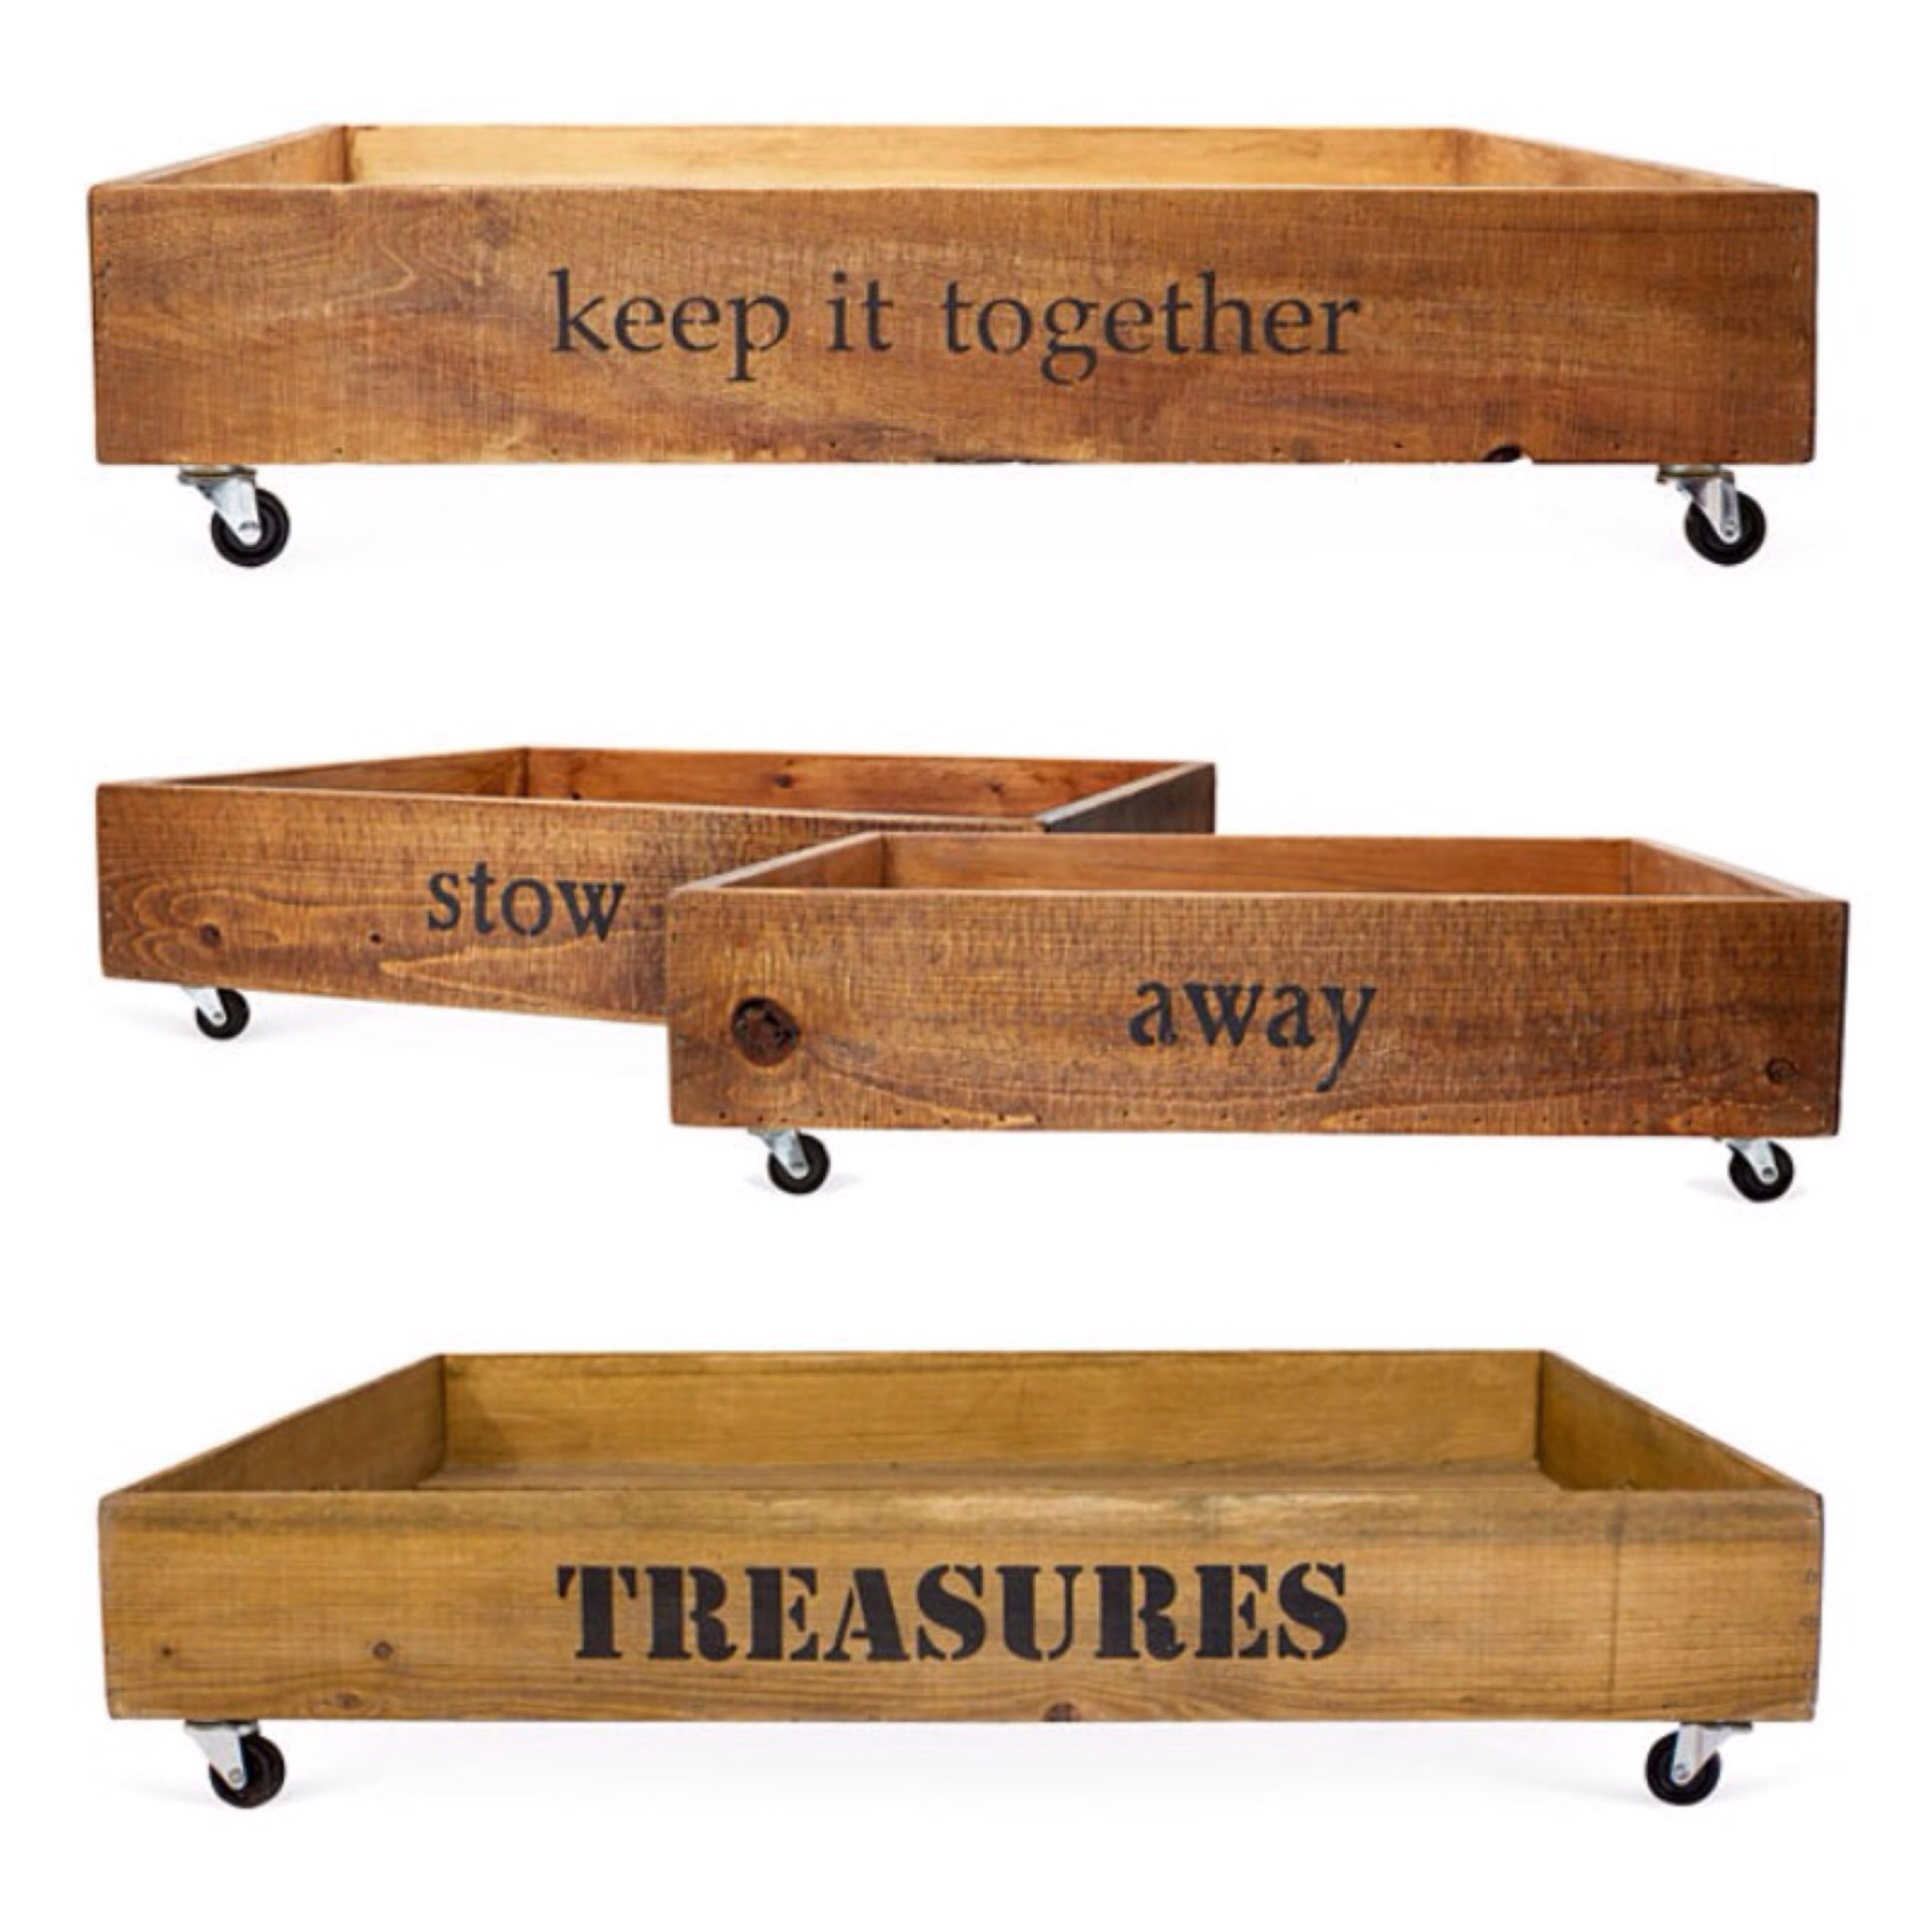 Fun ideas for rolling storage under the bed. Crate